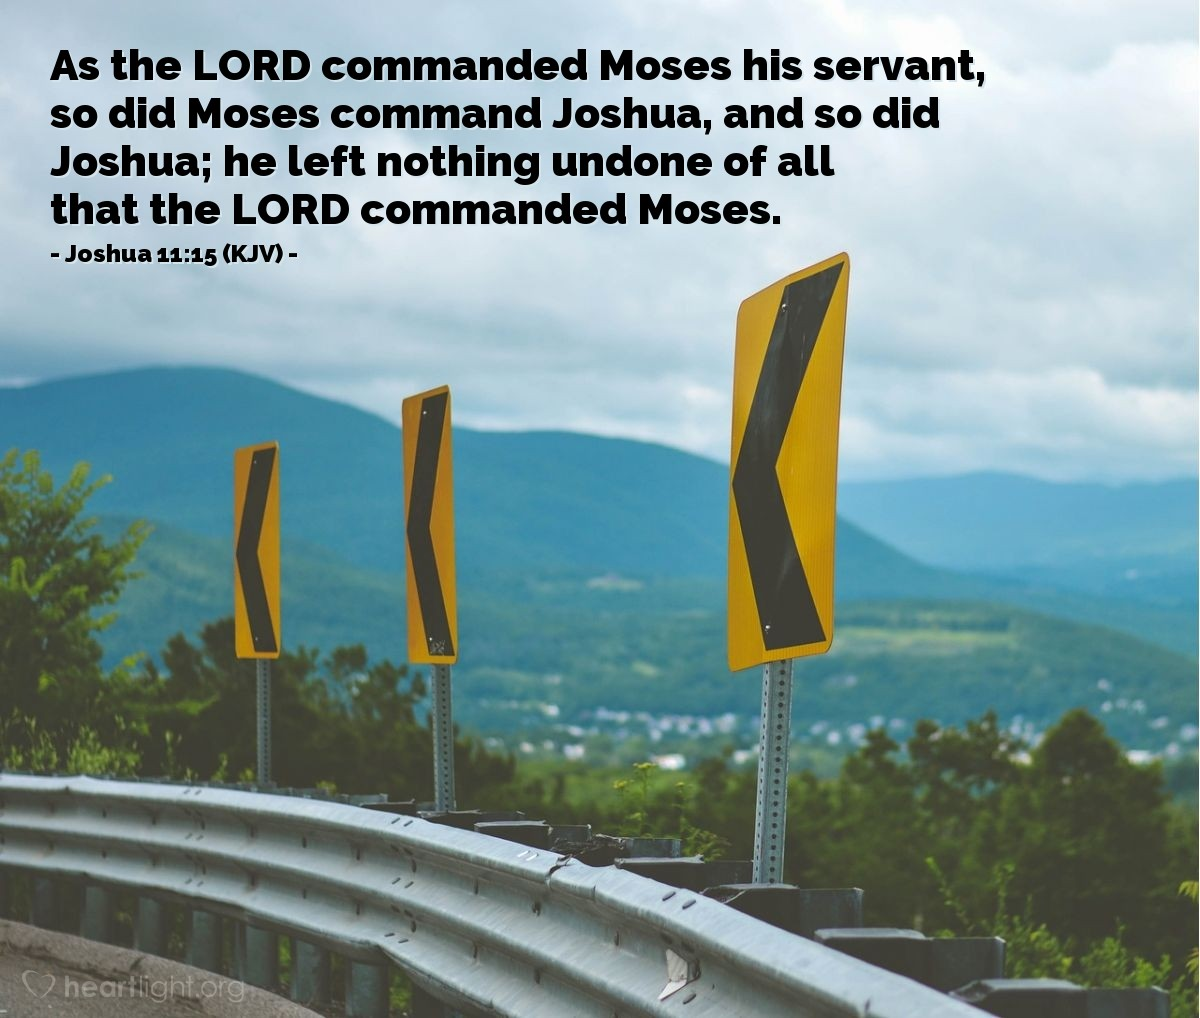 Illustration of Joshua 11:15 (KJV) — As the LORD commanded Moses his servant, so did Moses command Joshua, and so did Joshua; he left nothing undone of all that the LORD commanded Moses.